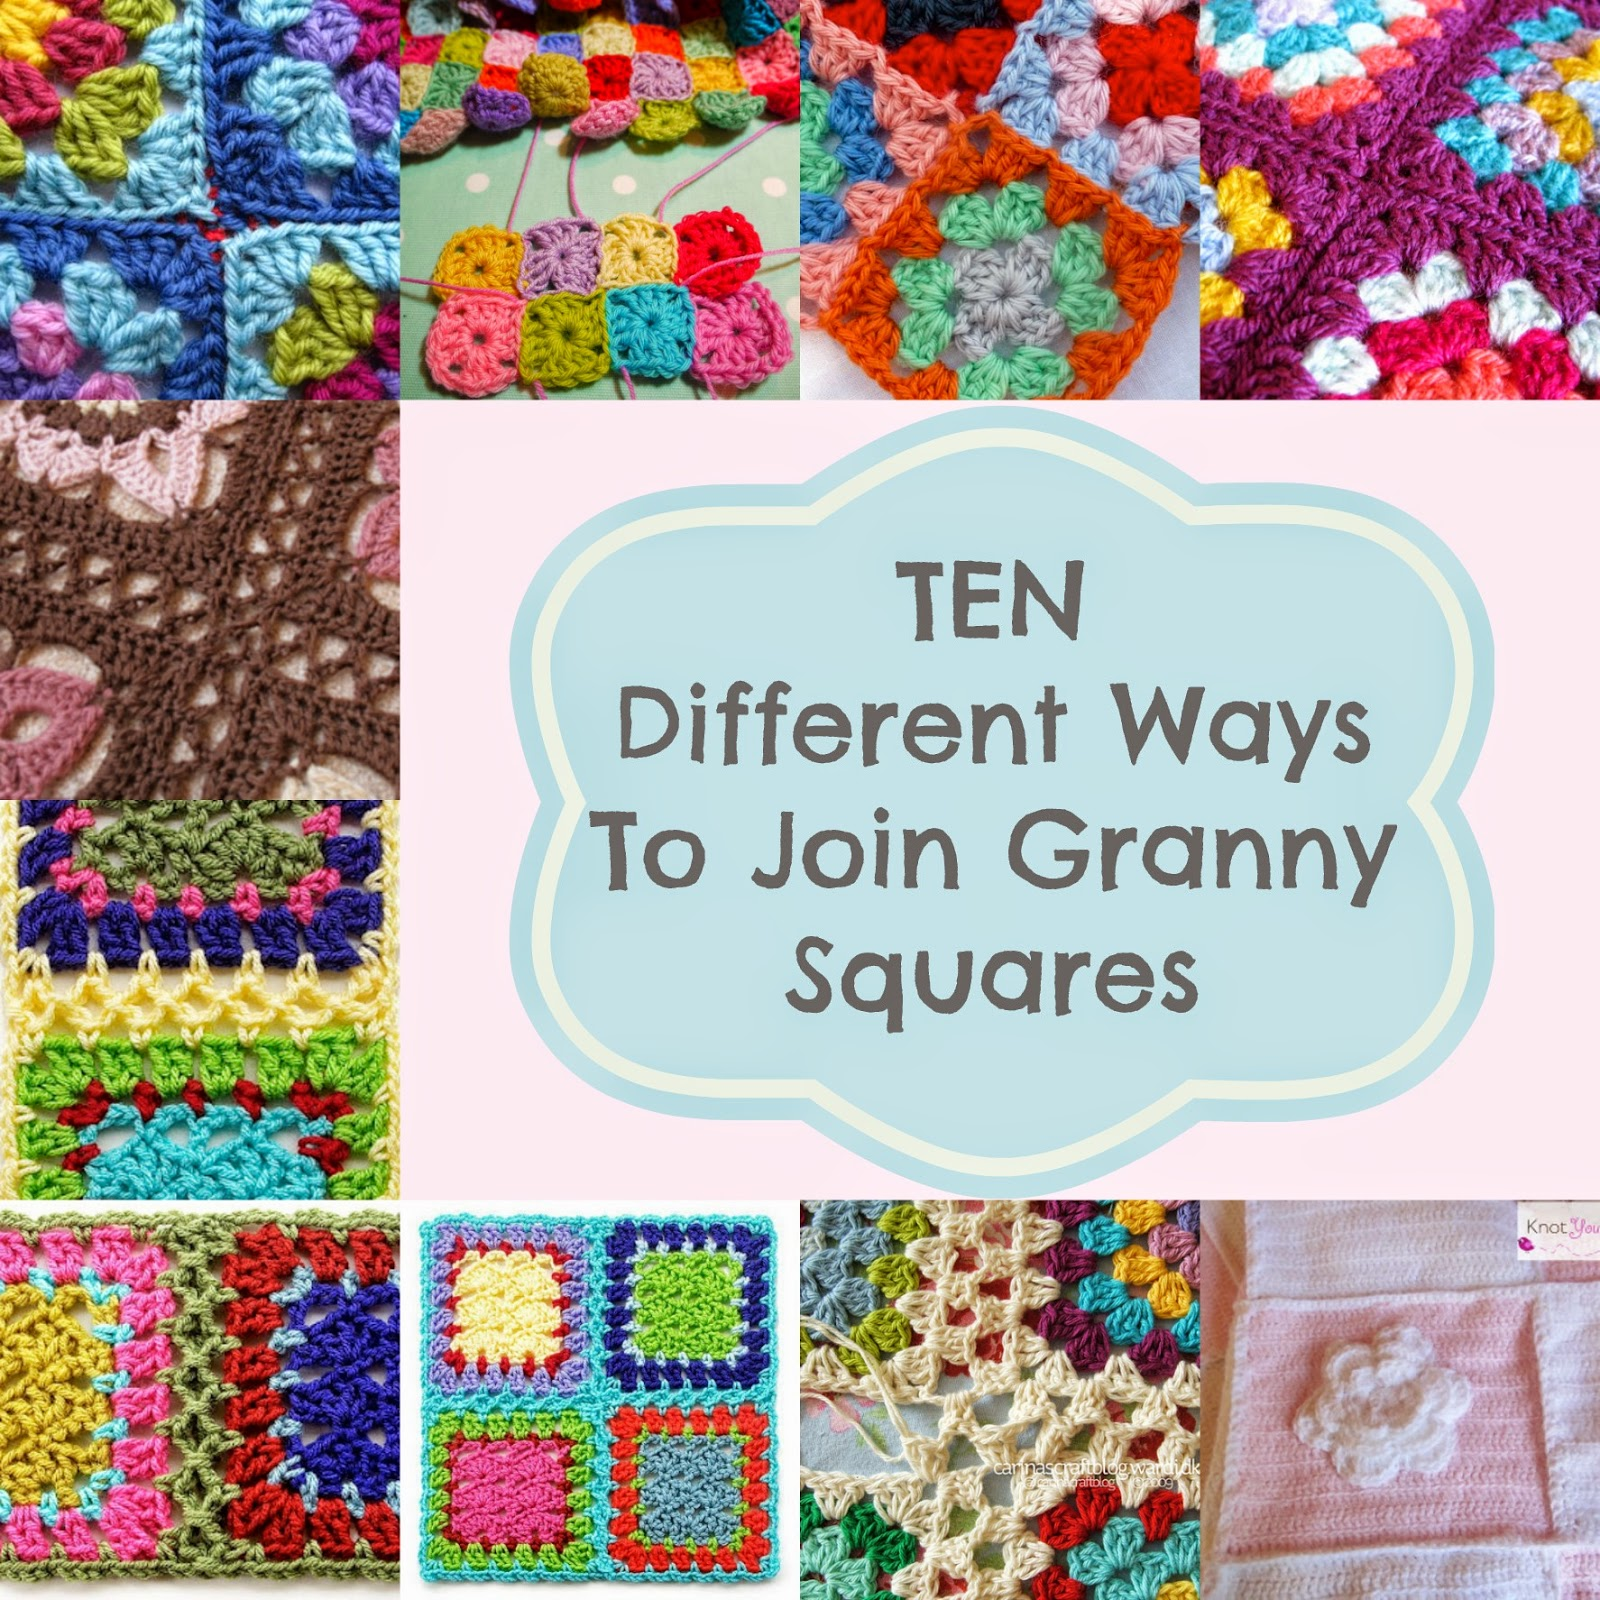 10. Different Ways To Join Granny Squares